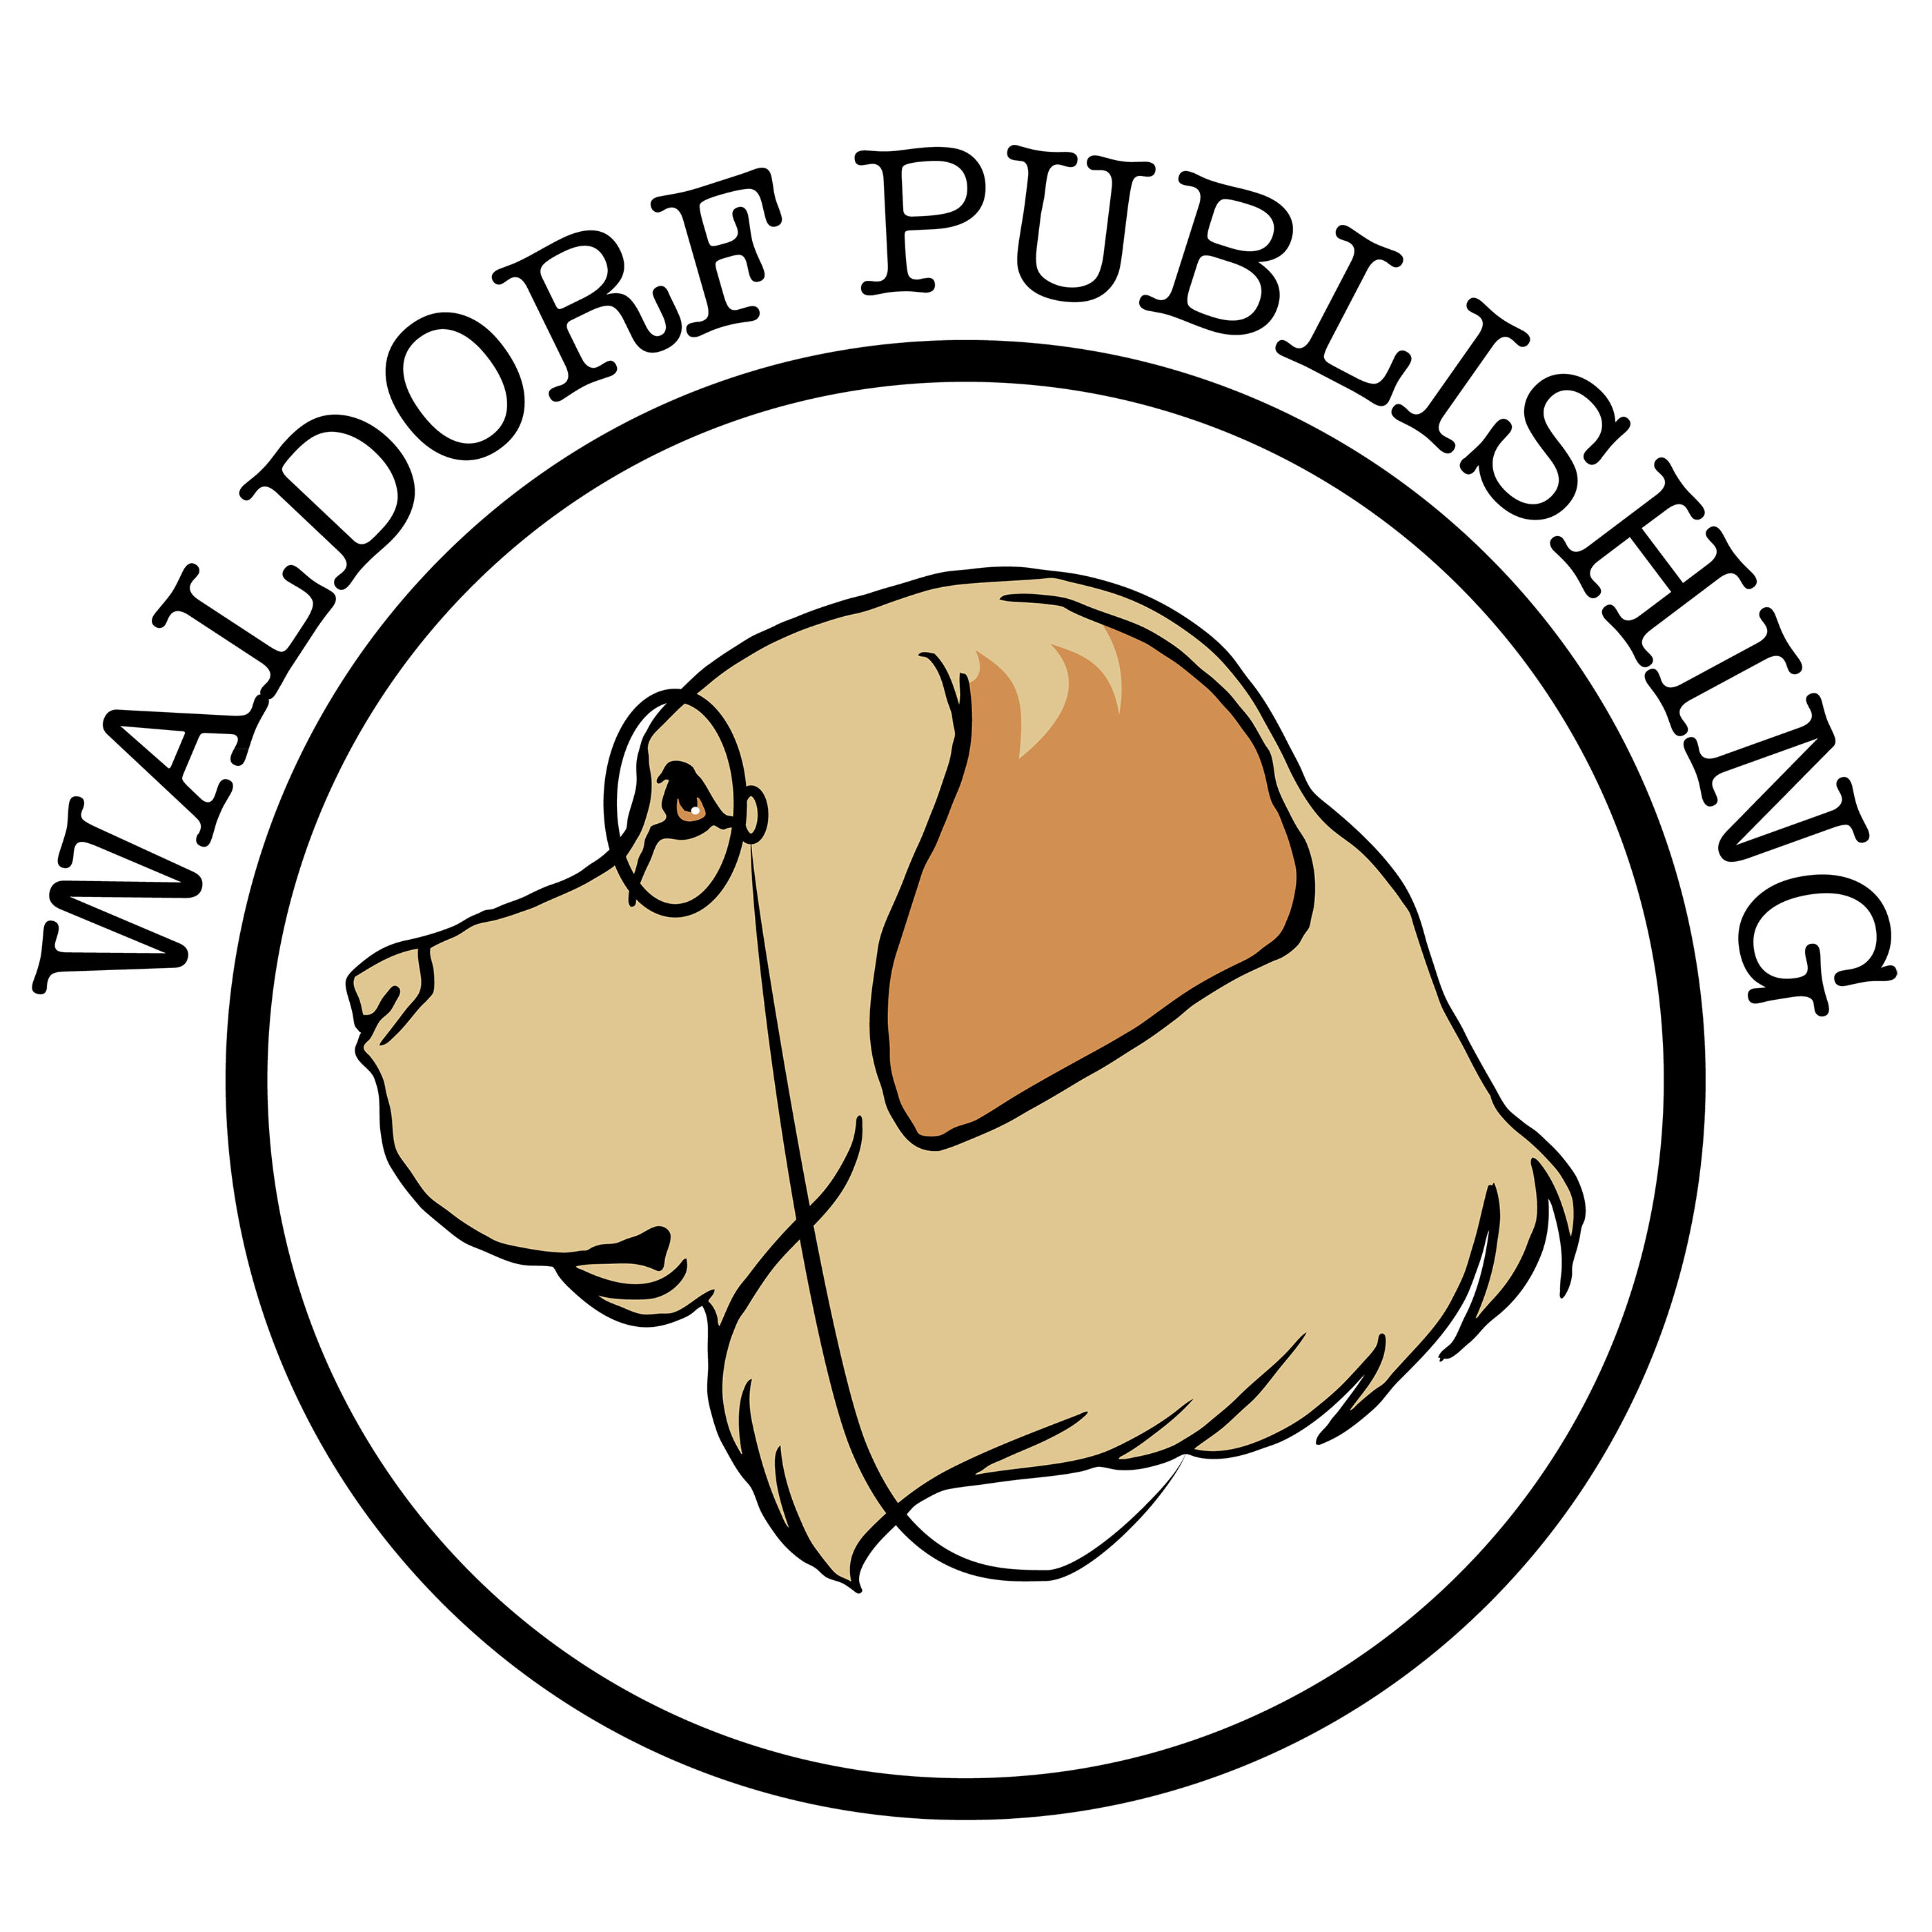 Waldorf Publishing Logo